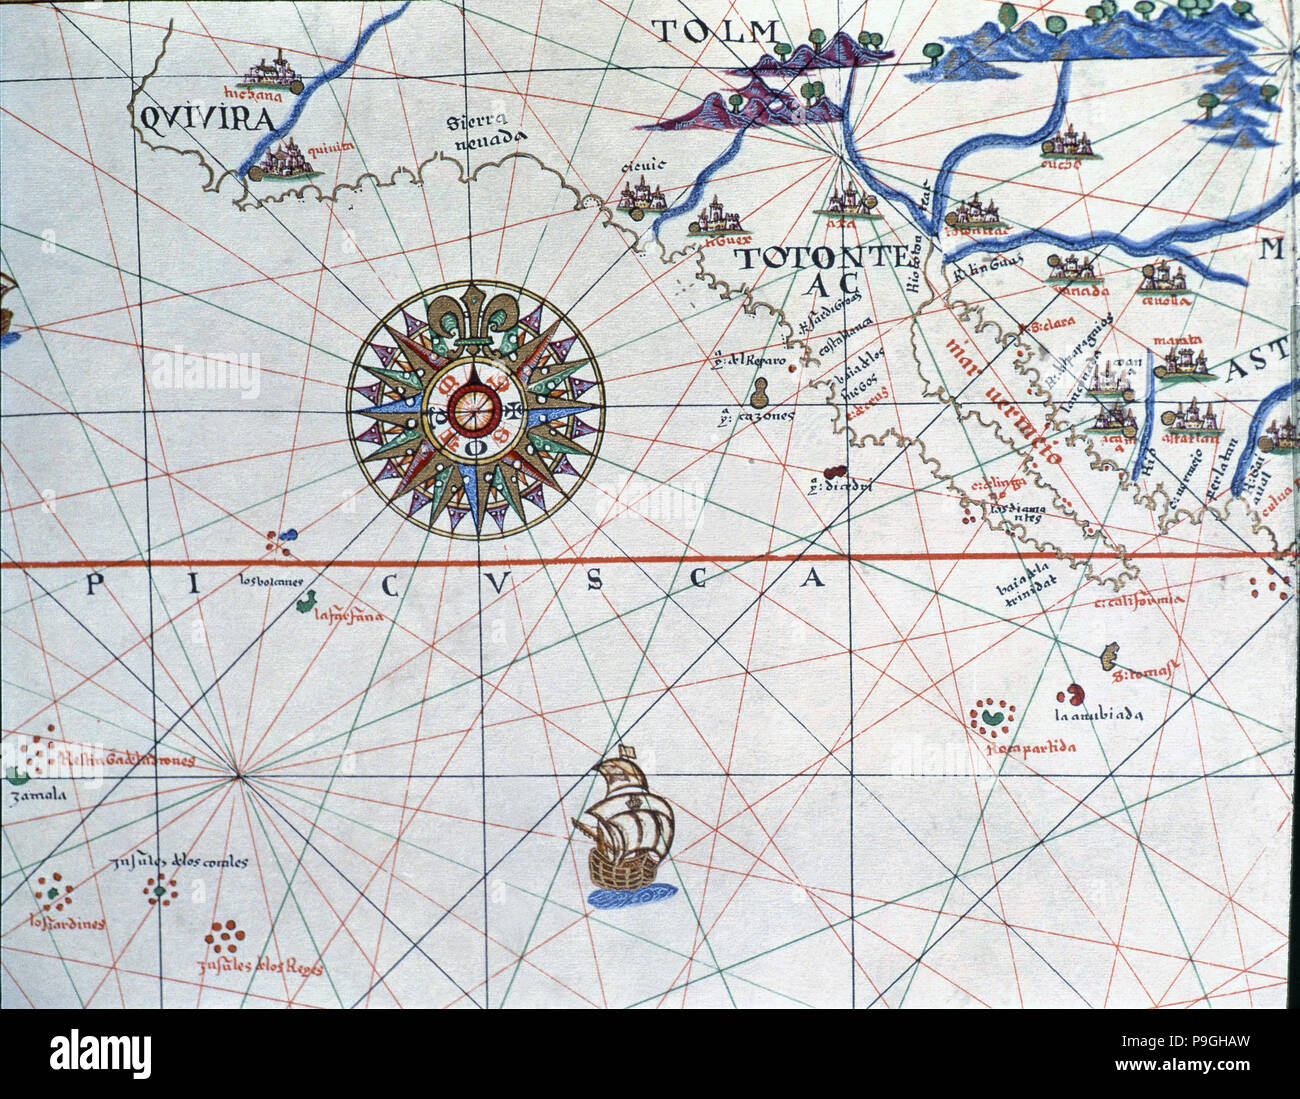 Atlas of Joan Martines, Messina, 1582. Portulan chart of Alta and Baja California and the Pacific… Stock Photo